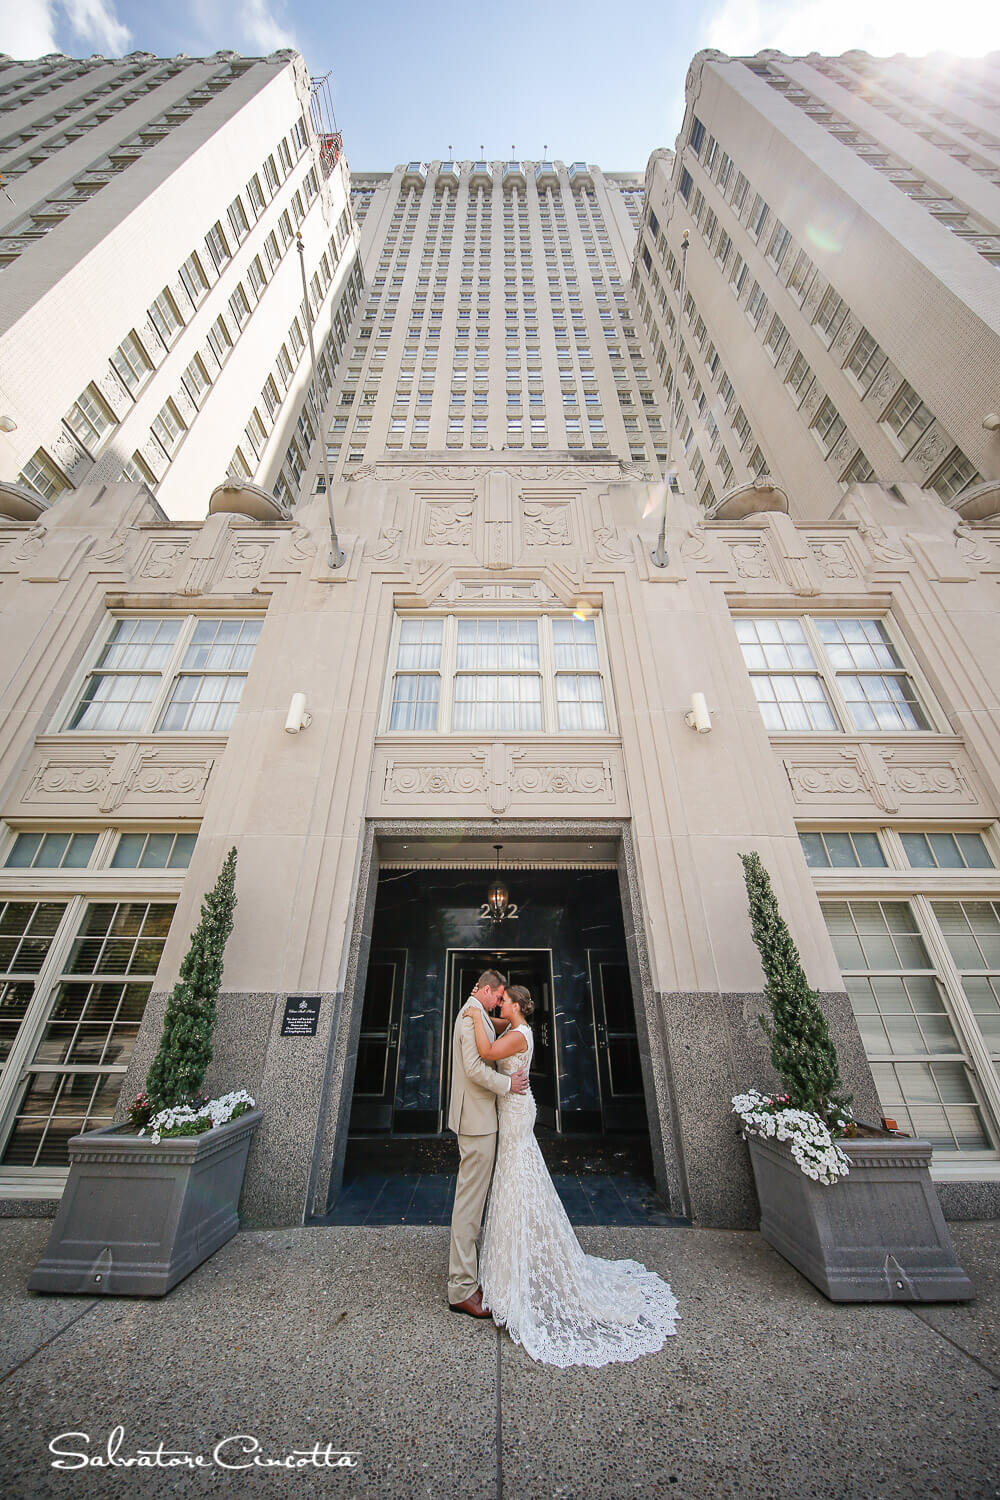 stlouis_wedding_photographer__31P5918.jpg